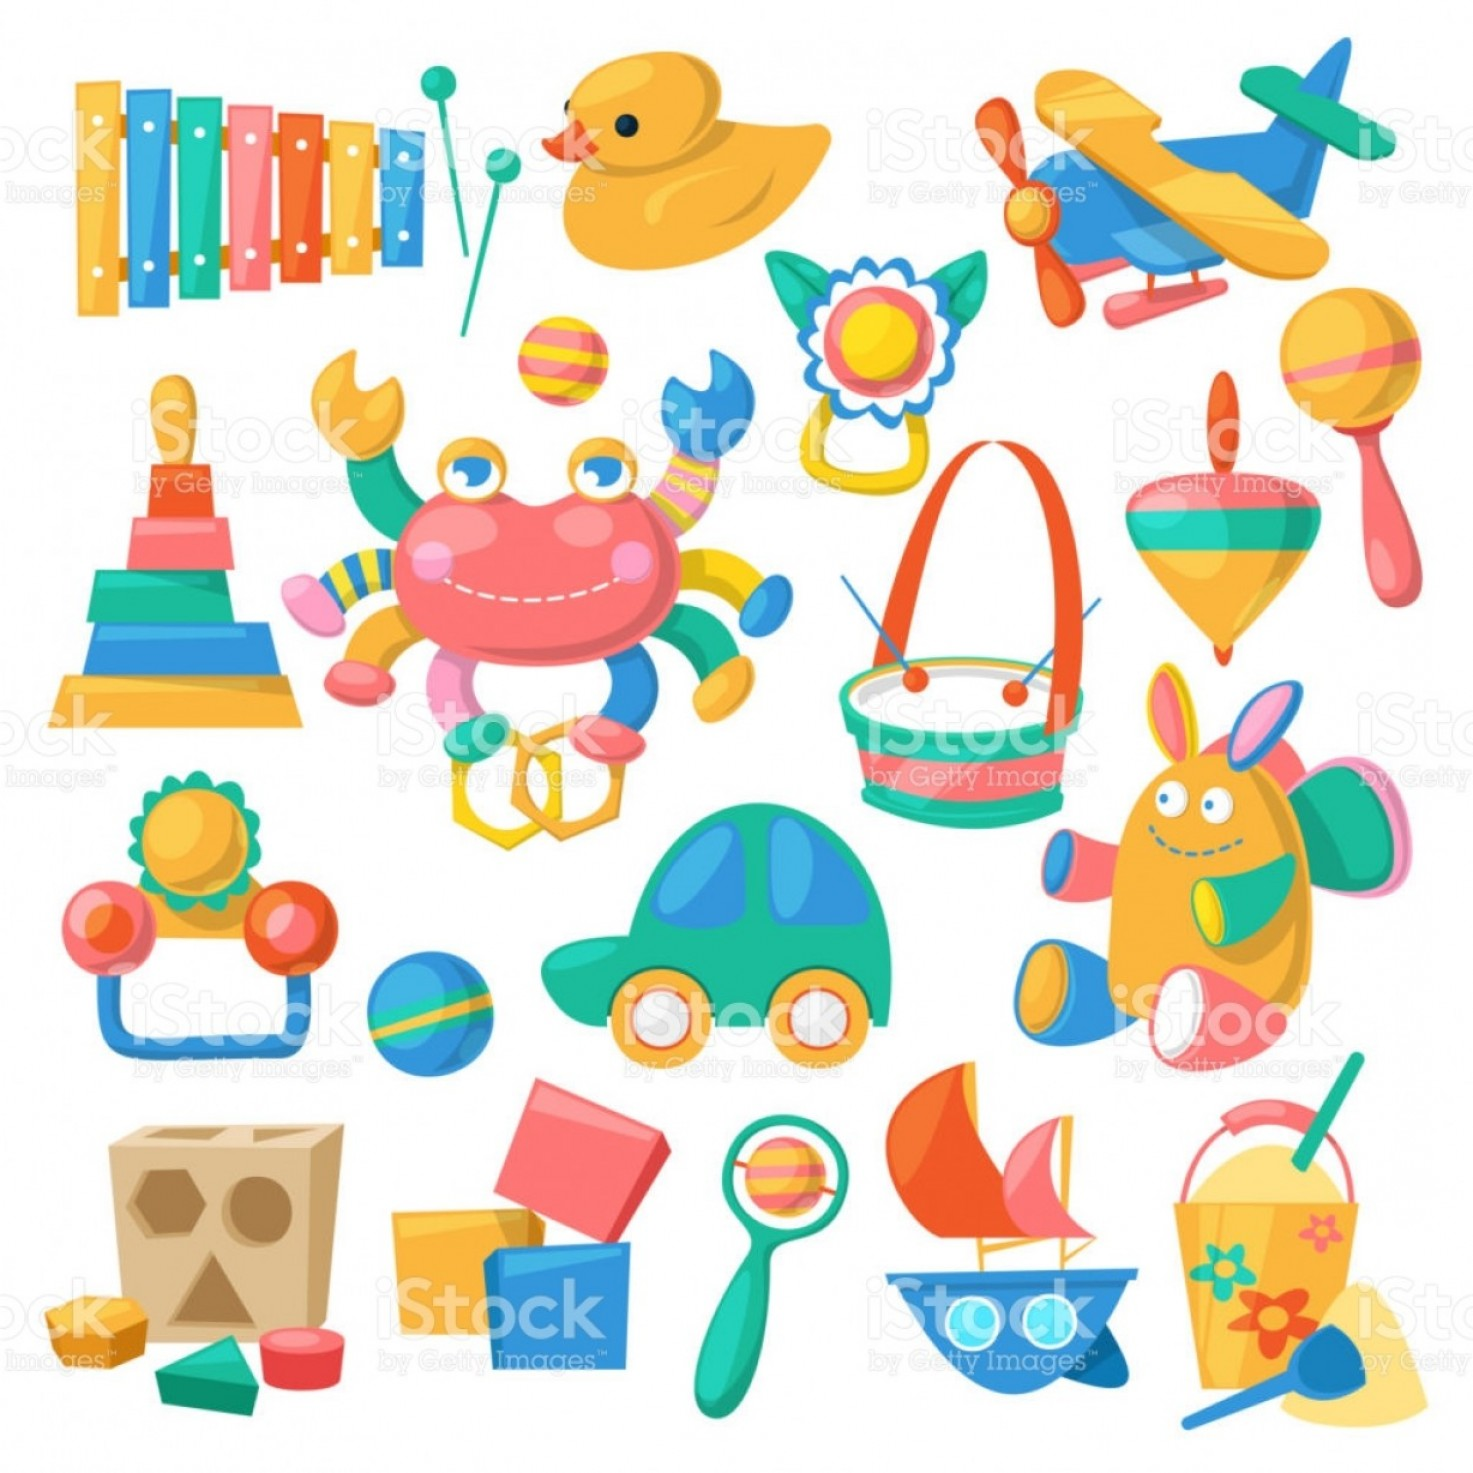 Baby Toy Vector: Kids Toys Vector Cartoon Games For Children In Playroom And Playing With Duck Car Or Gm